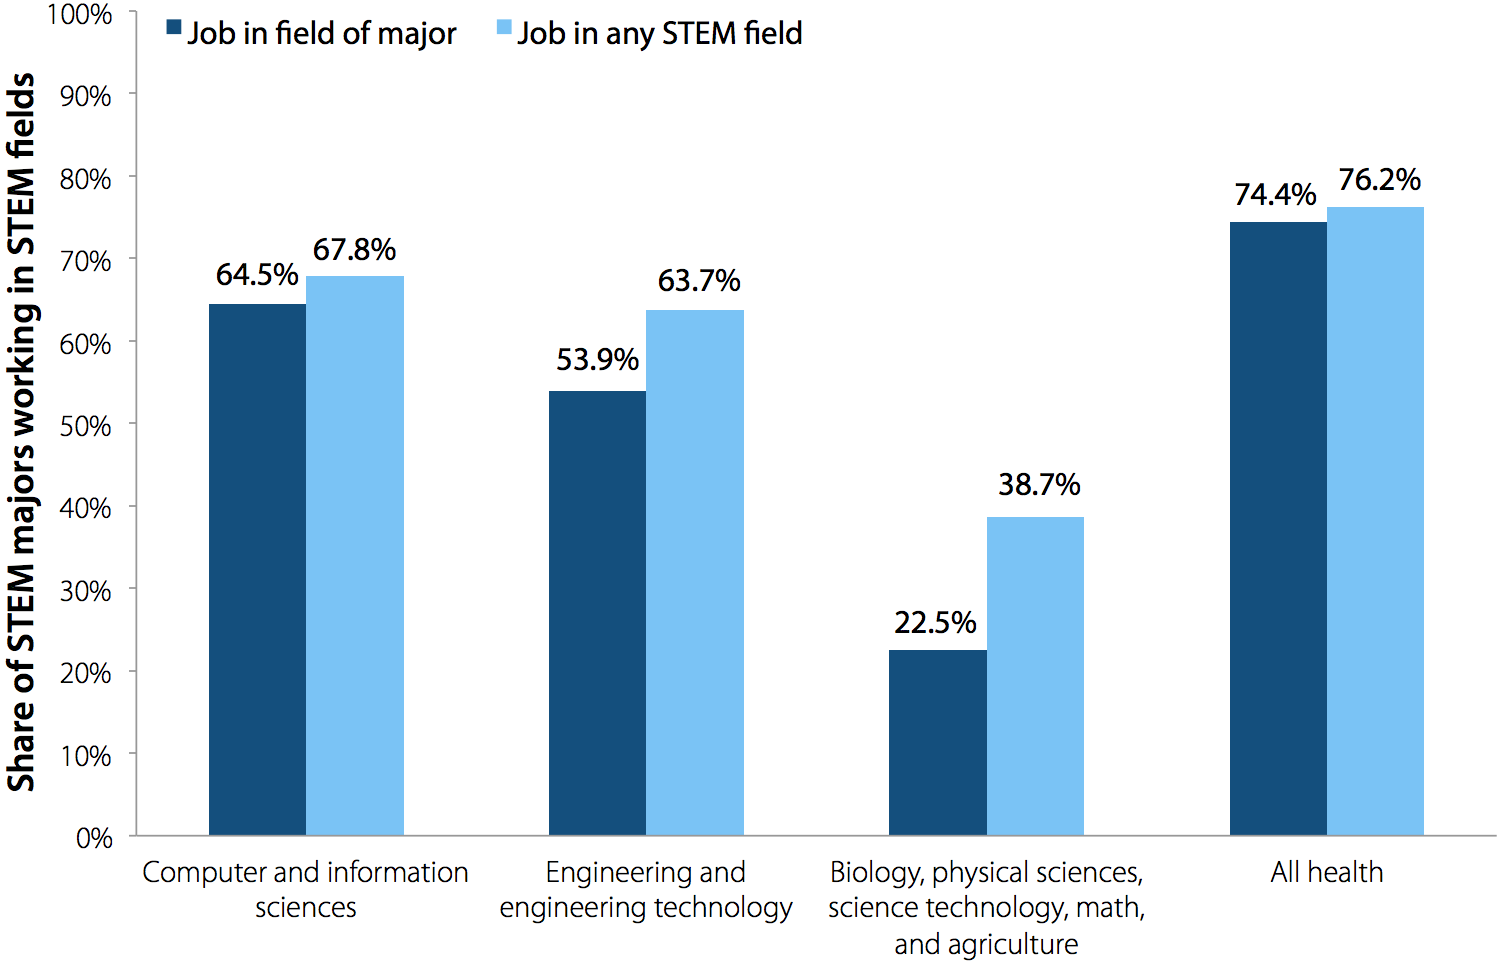 Occupational field of STEM college majors one year after graduation, 2009